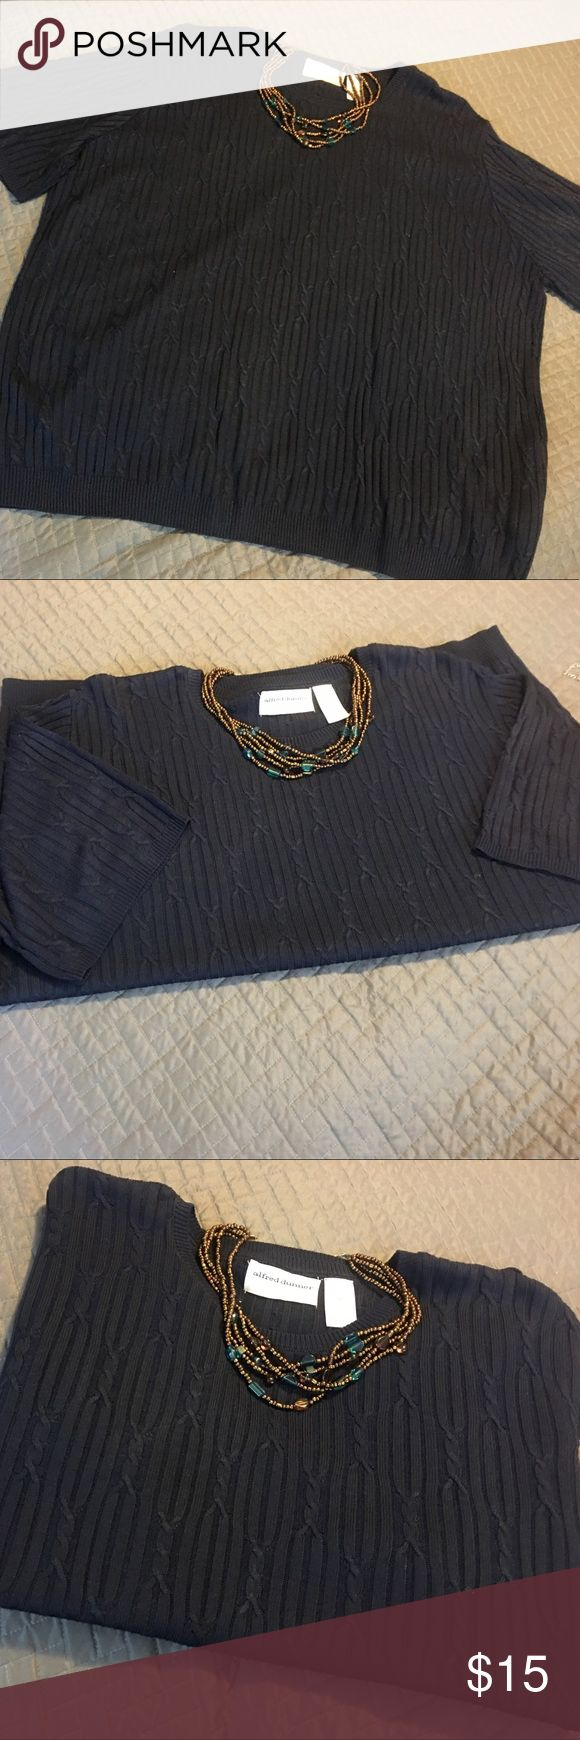 Lightweight Classic  Alfred Dunner sweater Lightweight Classic  Alfred Dunner sweater. Size 2x 100% Acrylic. This beauty goes with everything. The look can go from chic to classic by just a necklace change. A must for any closet❤ Alfred Dunner Tops